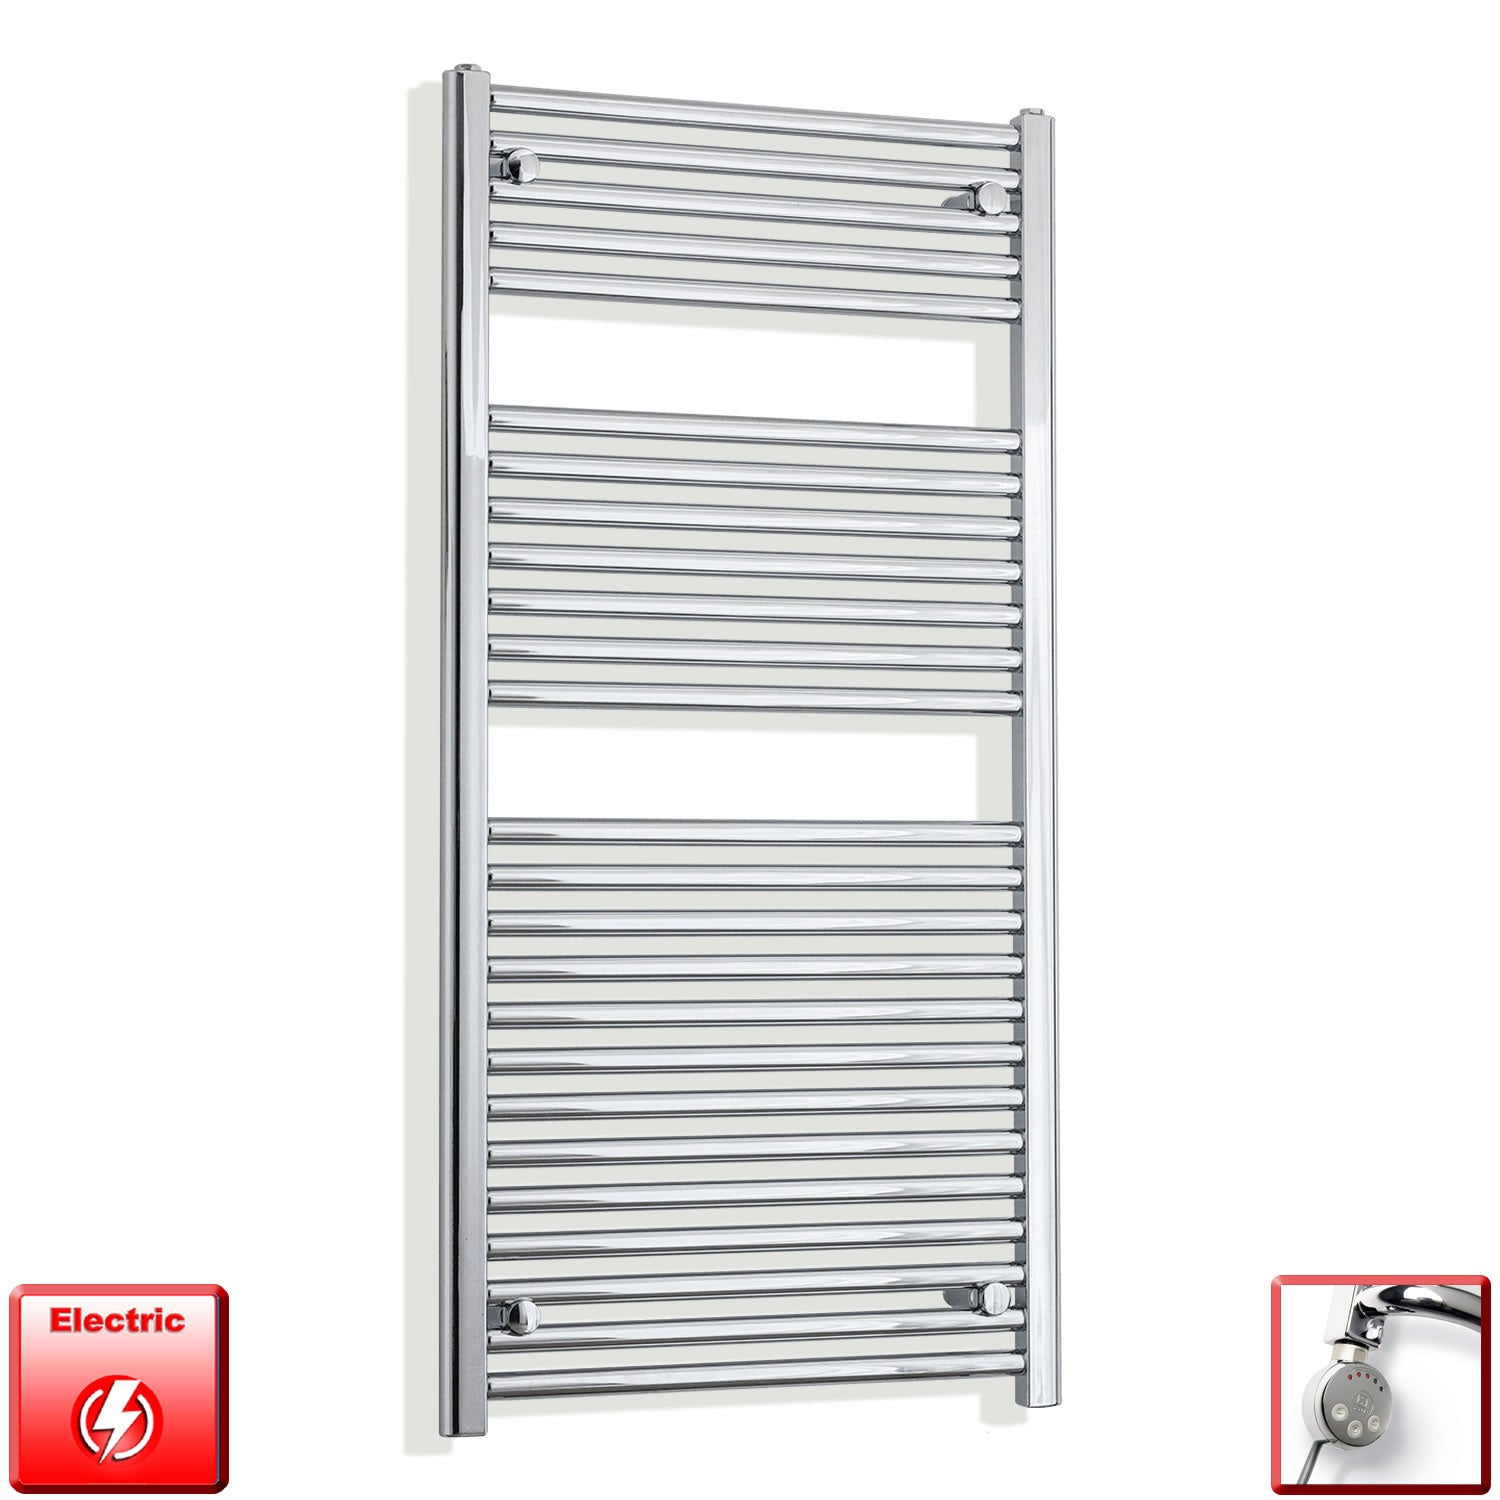 500mm Wide 1200mm High Flat Chrome Pre-Filled Electric Heated Towel Rail Radiator HTR,MEG Thermostatic Element